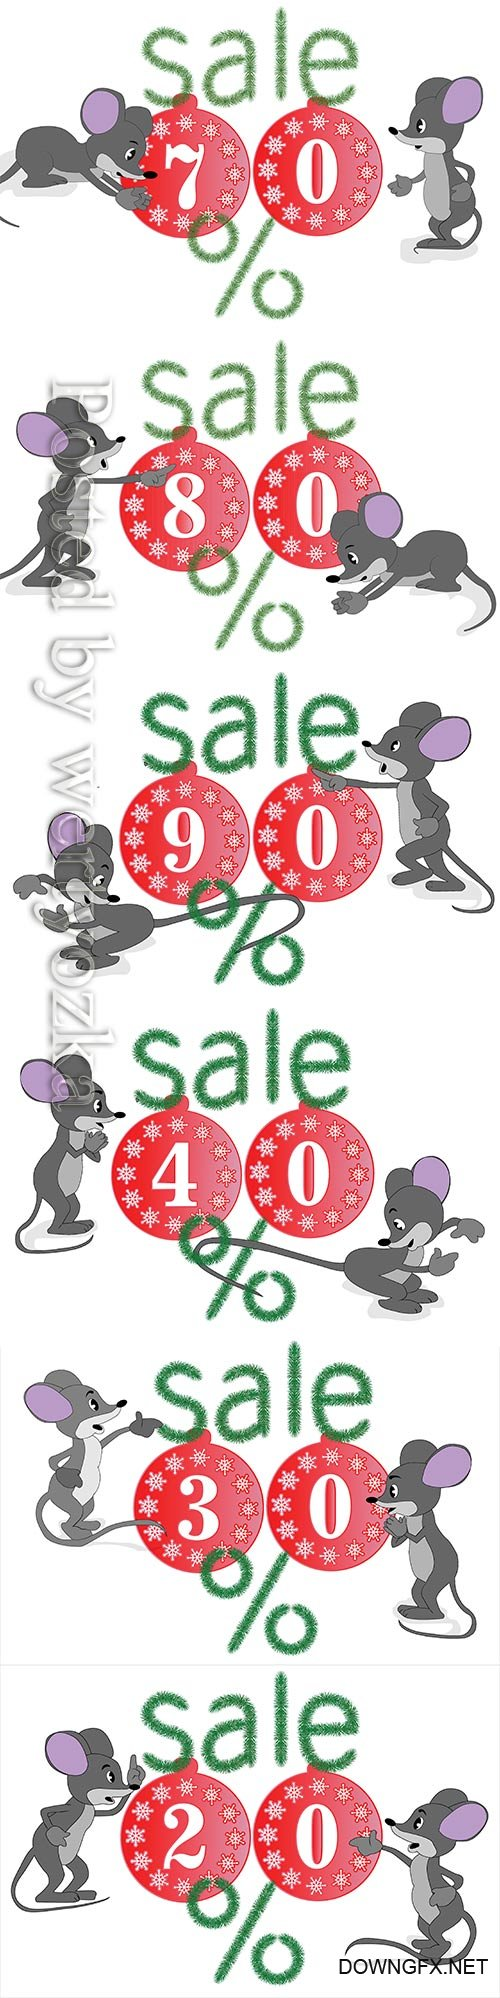 Christmas sale banner for advertising with rats and fir branches